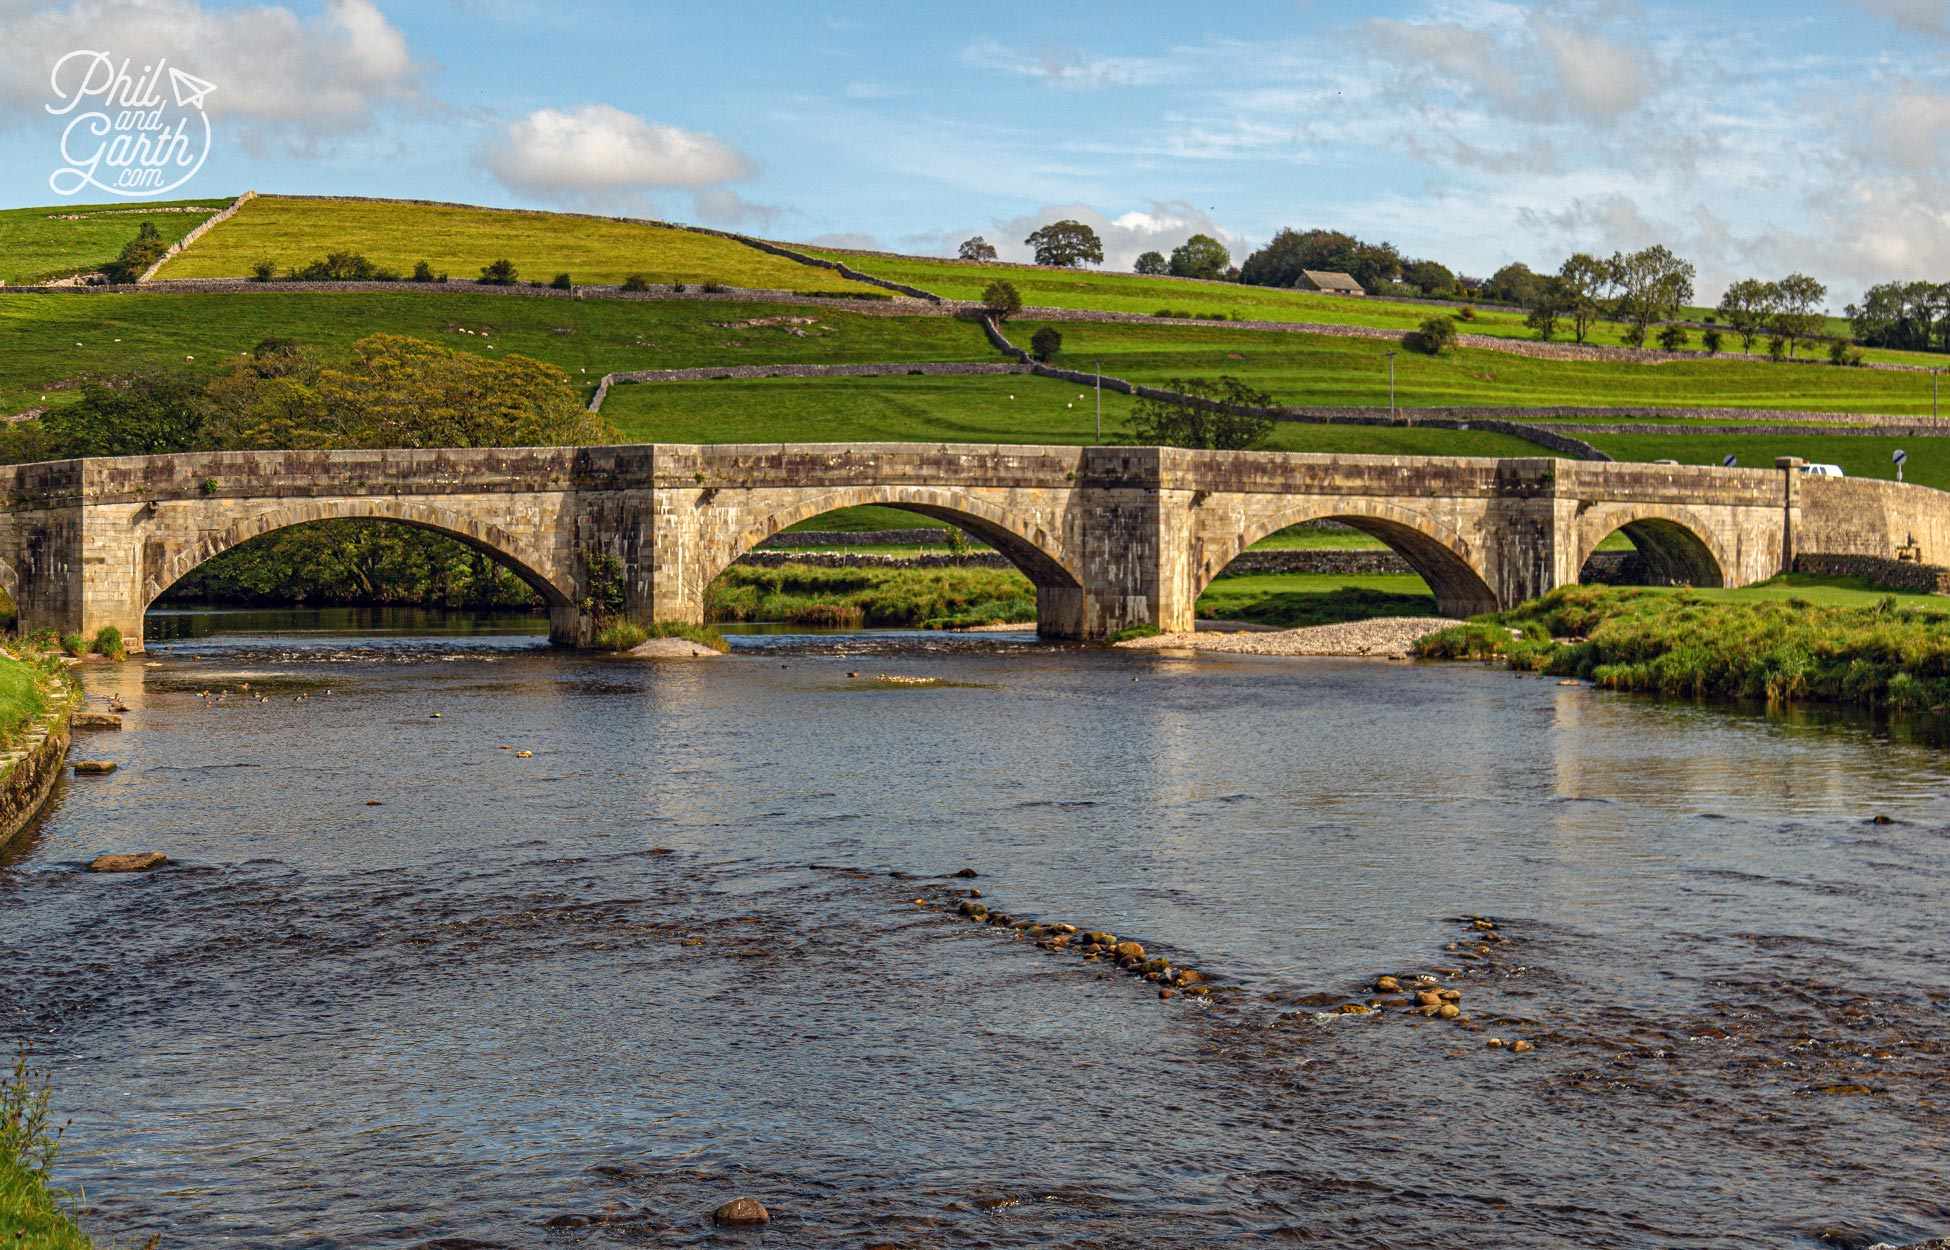 Burnsall's pretty 16th century 5 arched bridge in the Yorkshire Dales